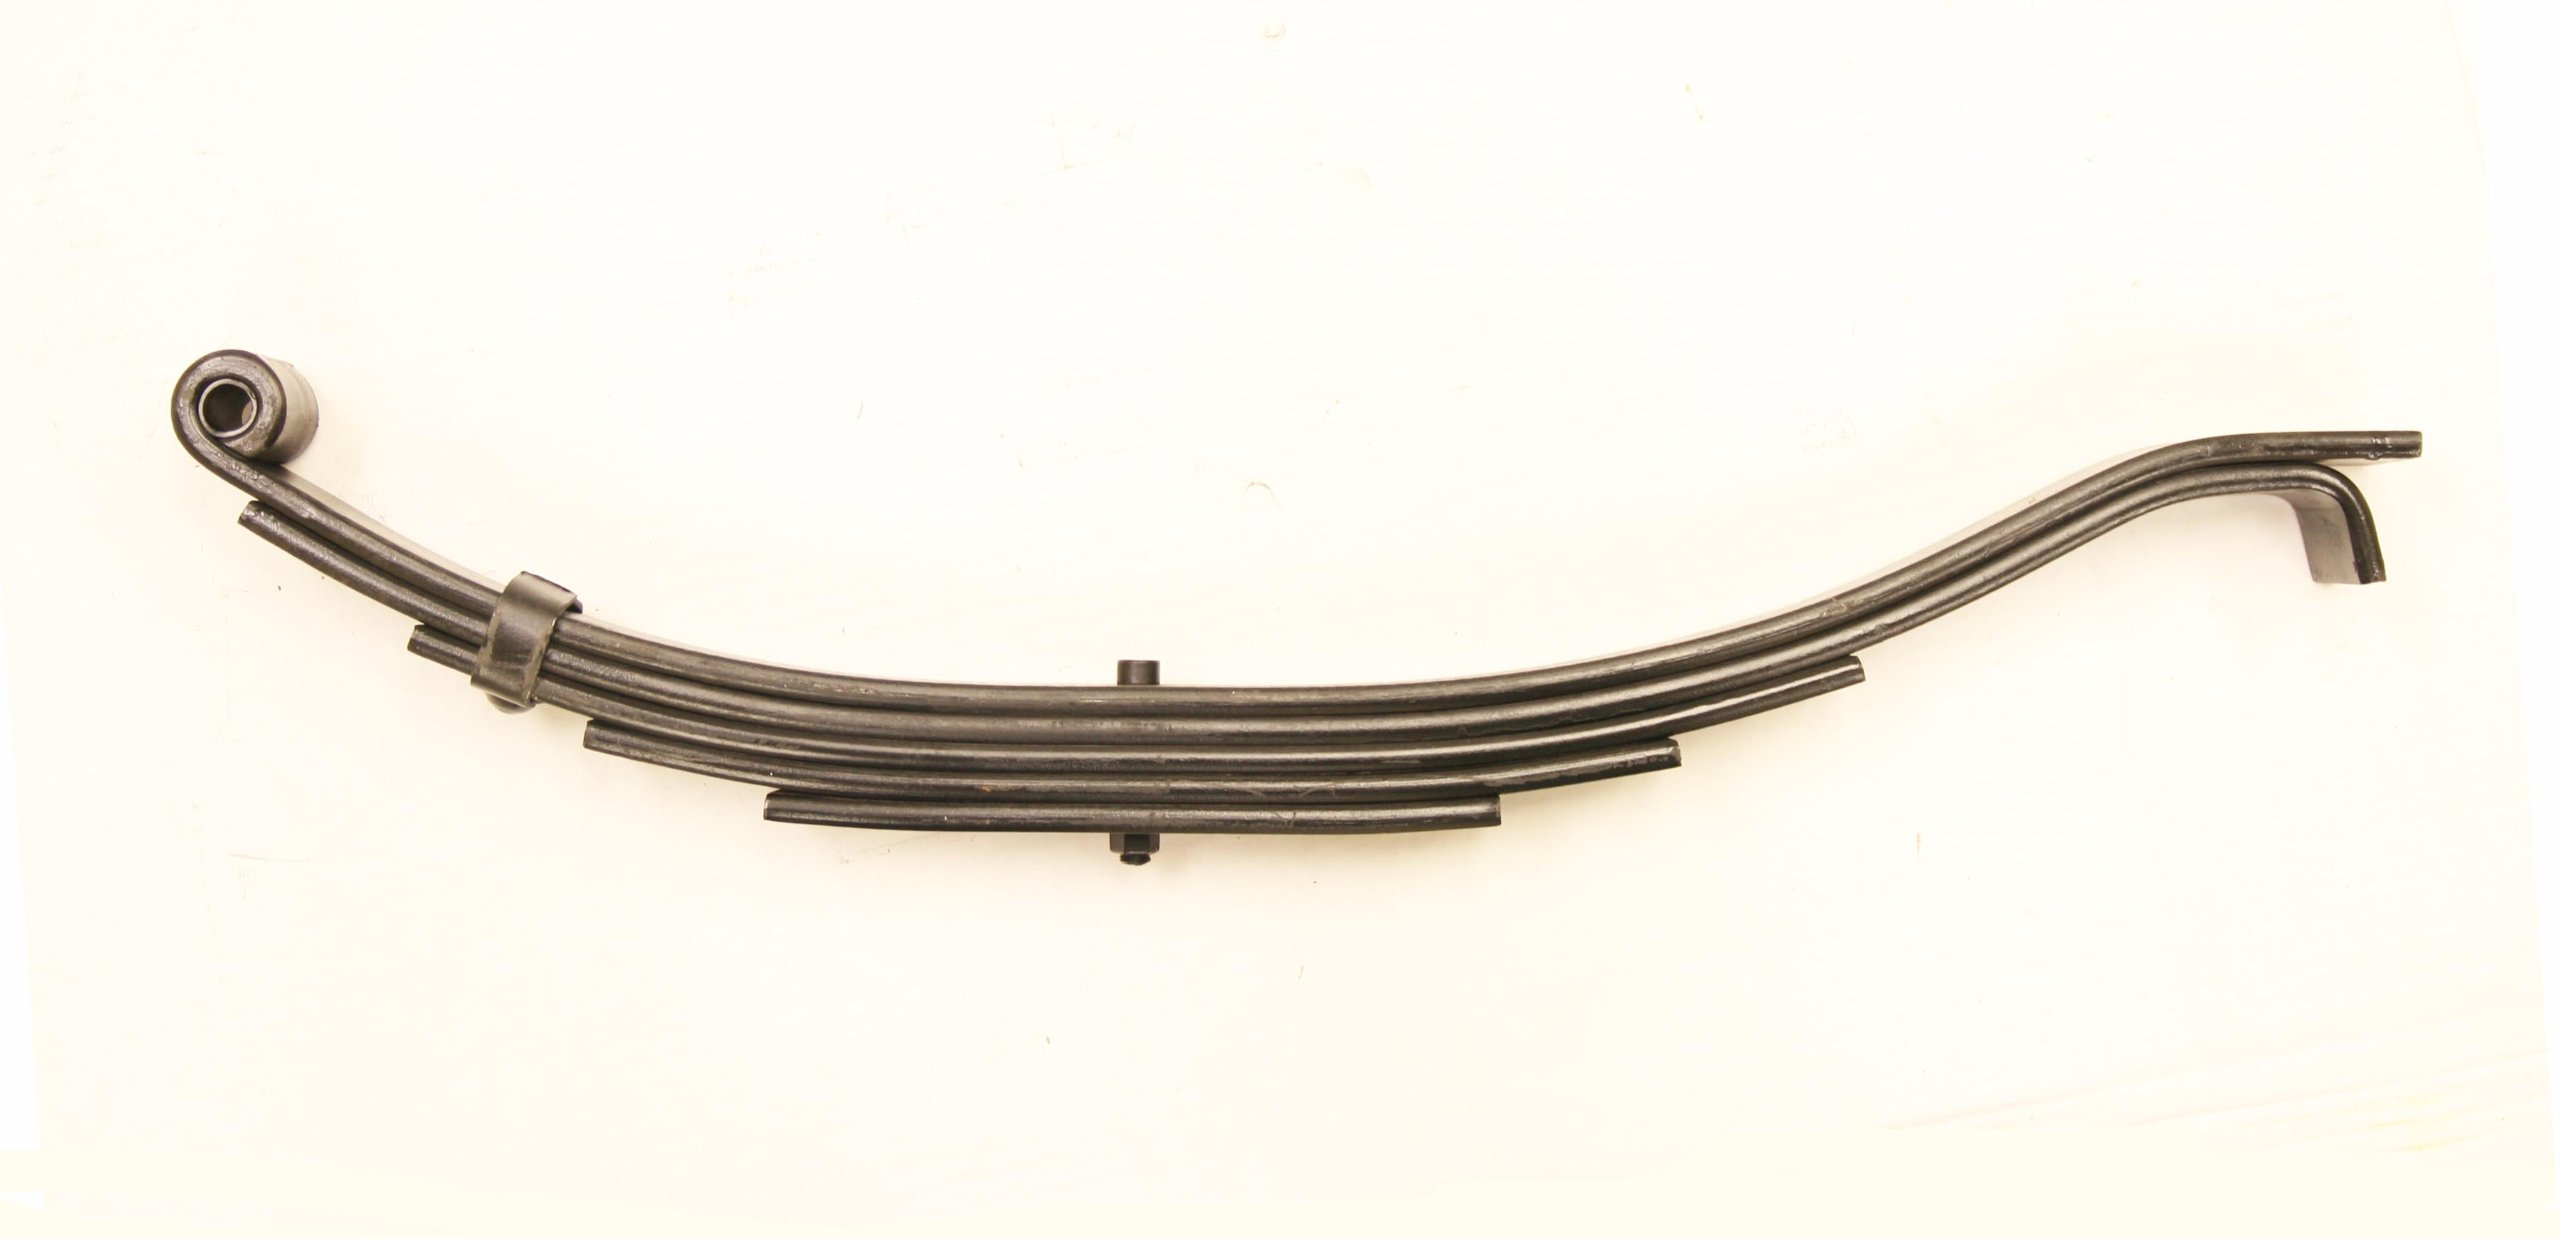 Libra New Trailer Leaf Spring-5 Leaf Slipper 3500lbs Capacity for 7000 Lbs Axle -20039 by Libra